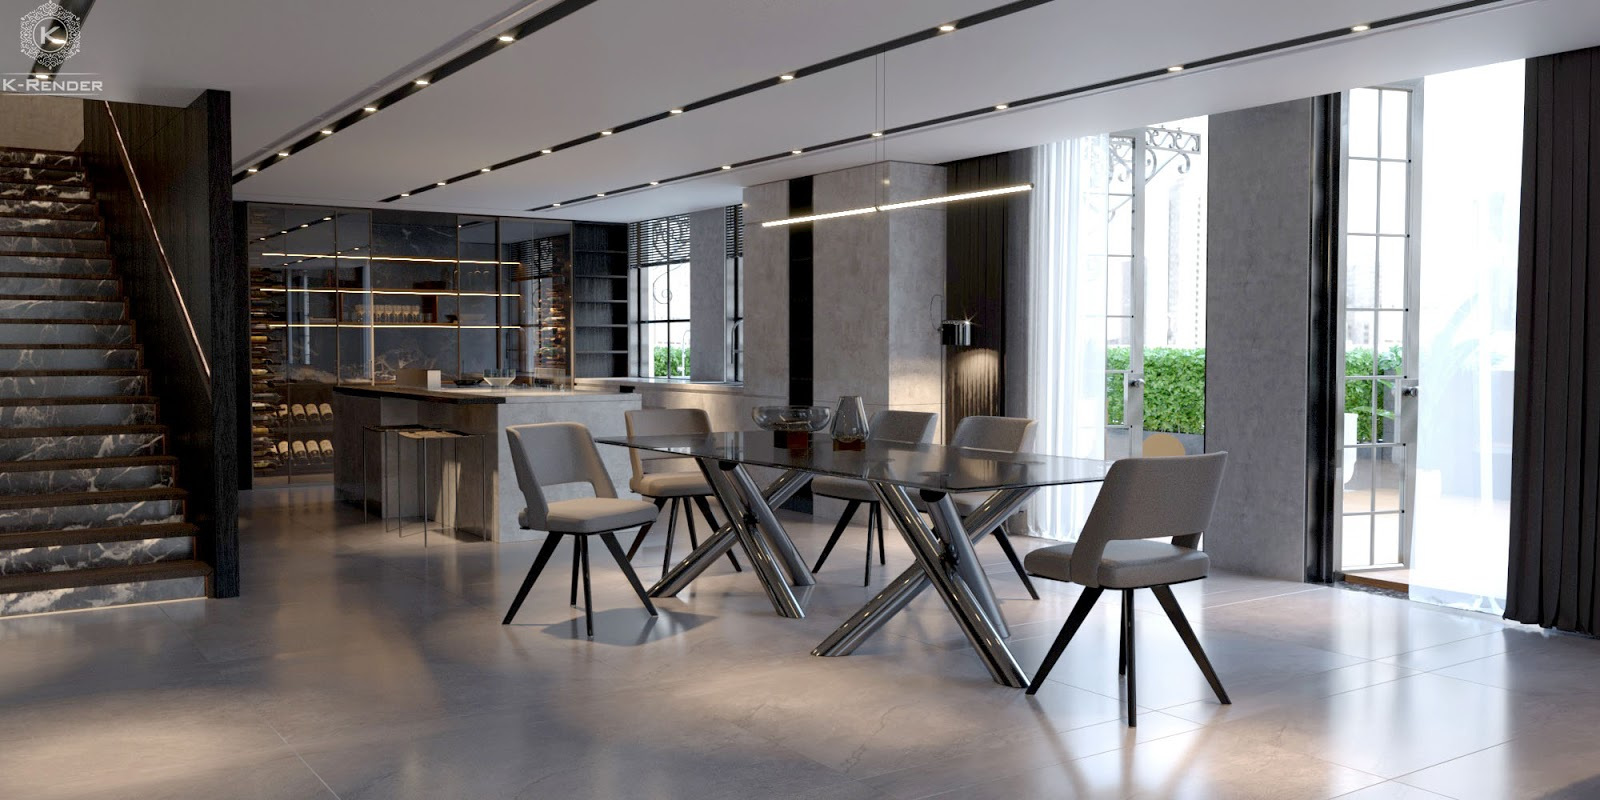 a-wide-interior-space-of-k-render-tplace-project-1